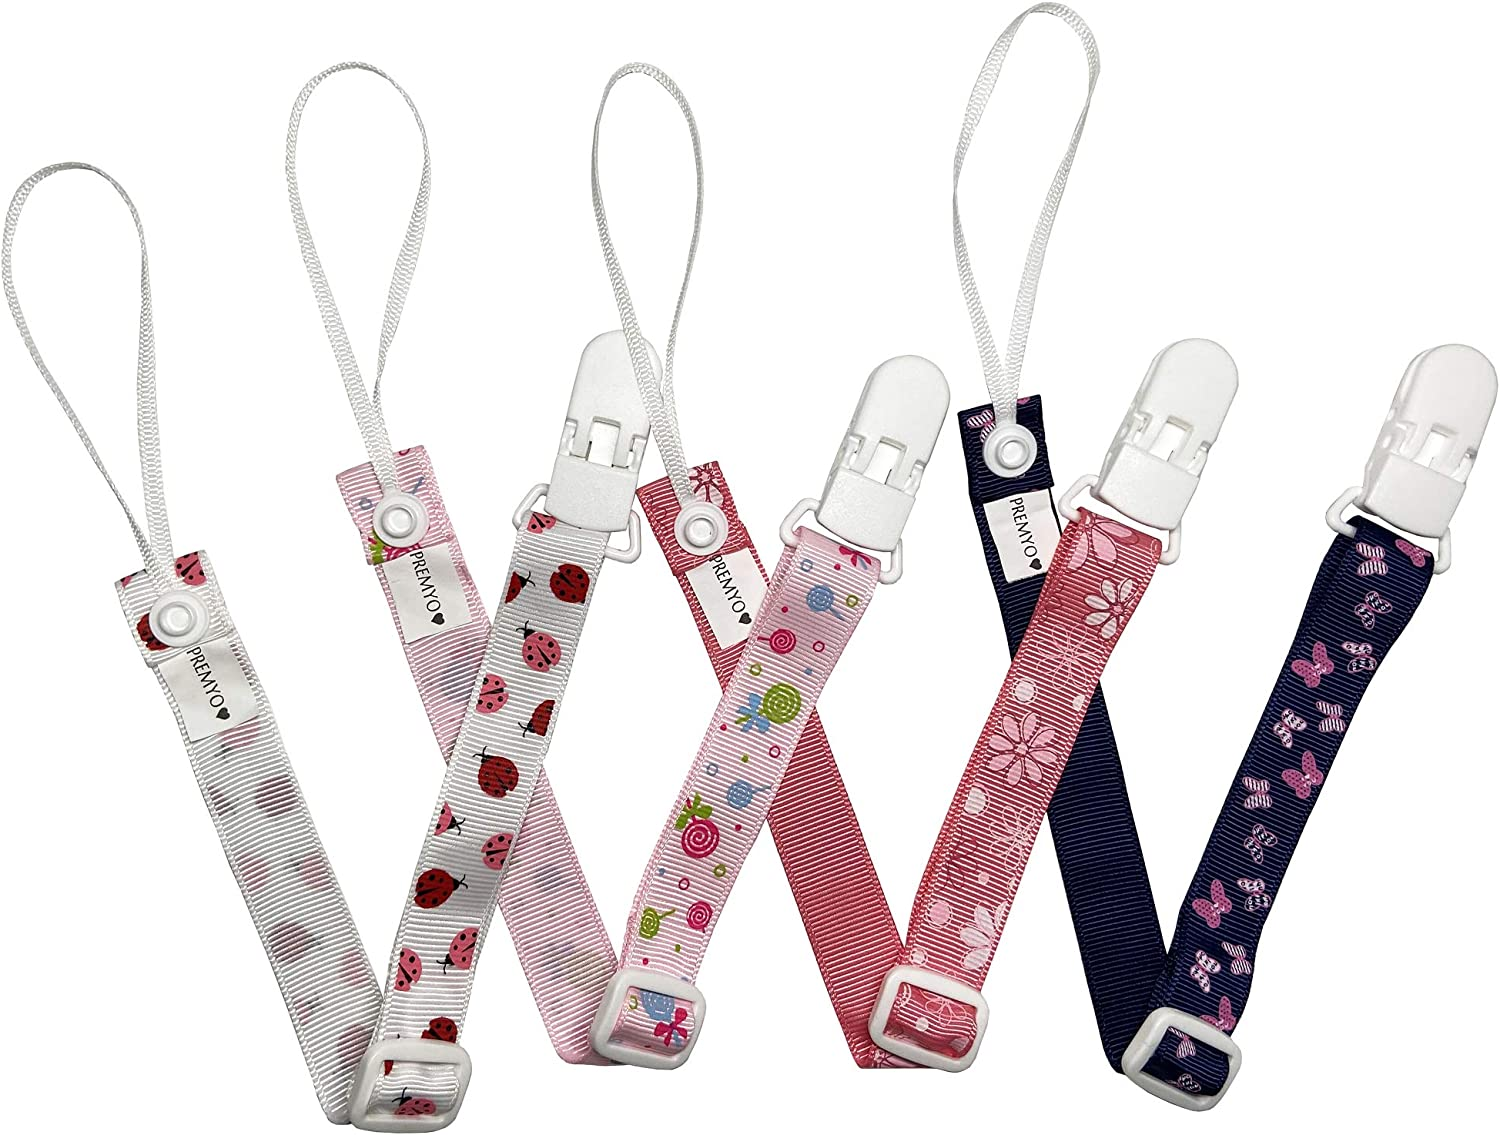 Baby Soother Chain Adjustable Length Universal Fit Rose PREMYO 4 Pack Dummy Clips for Girls Pacifier Holder Strap